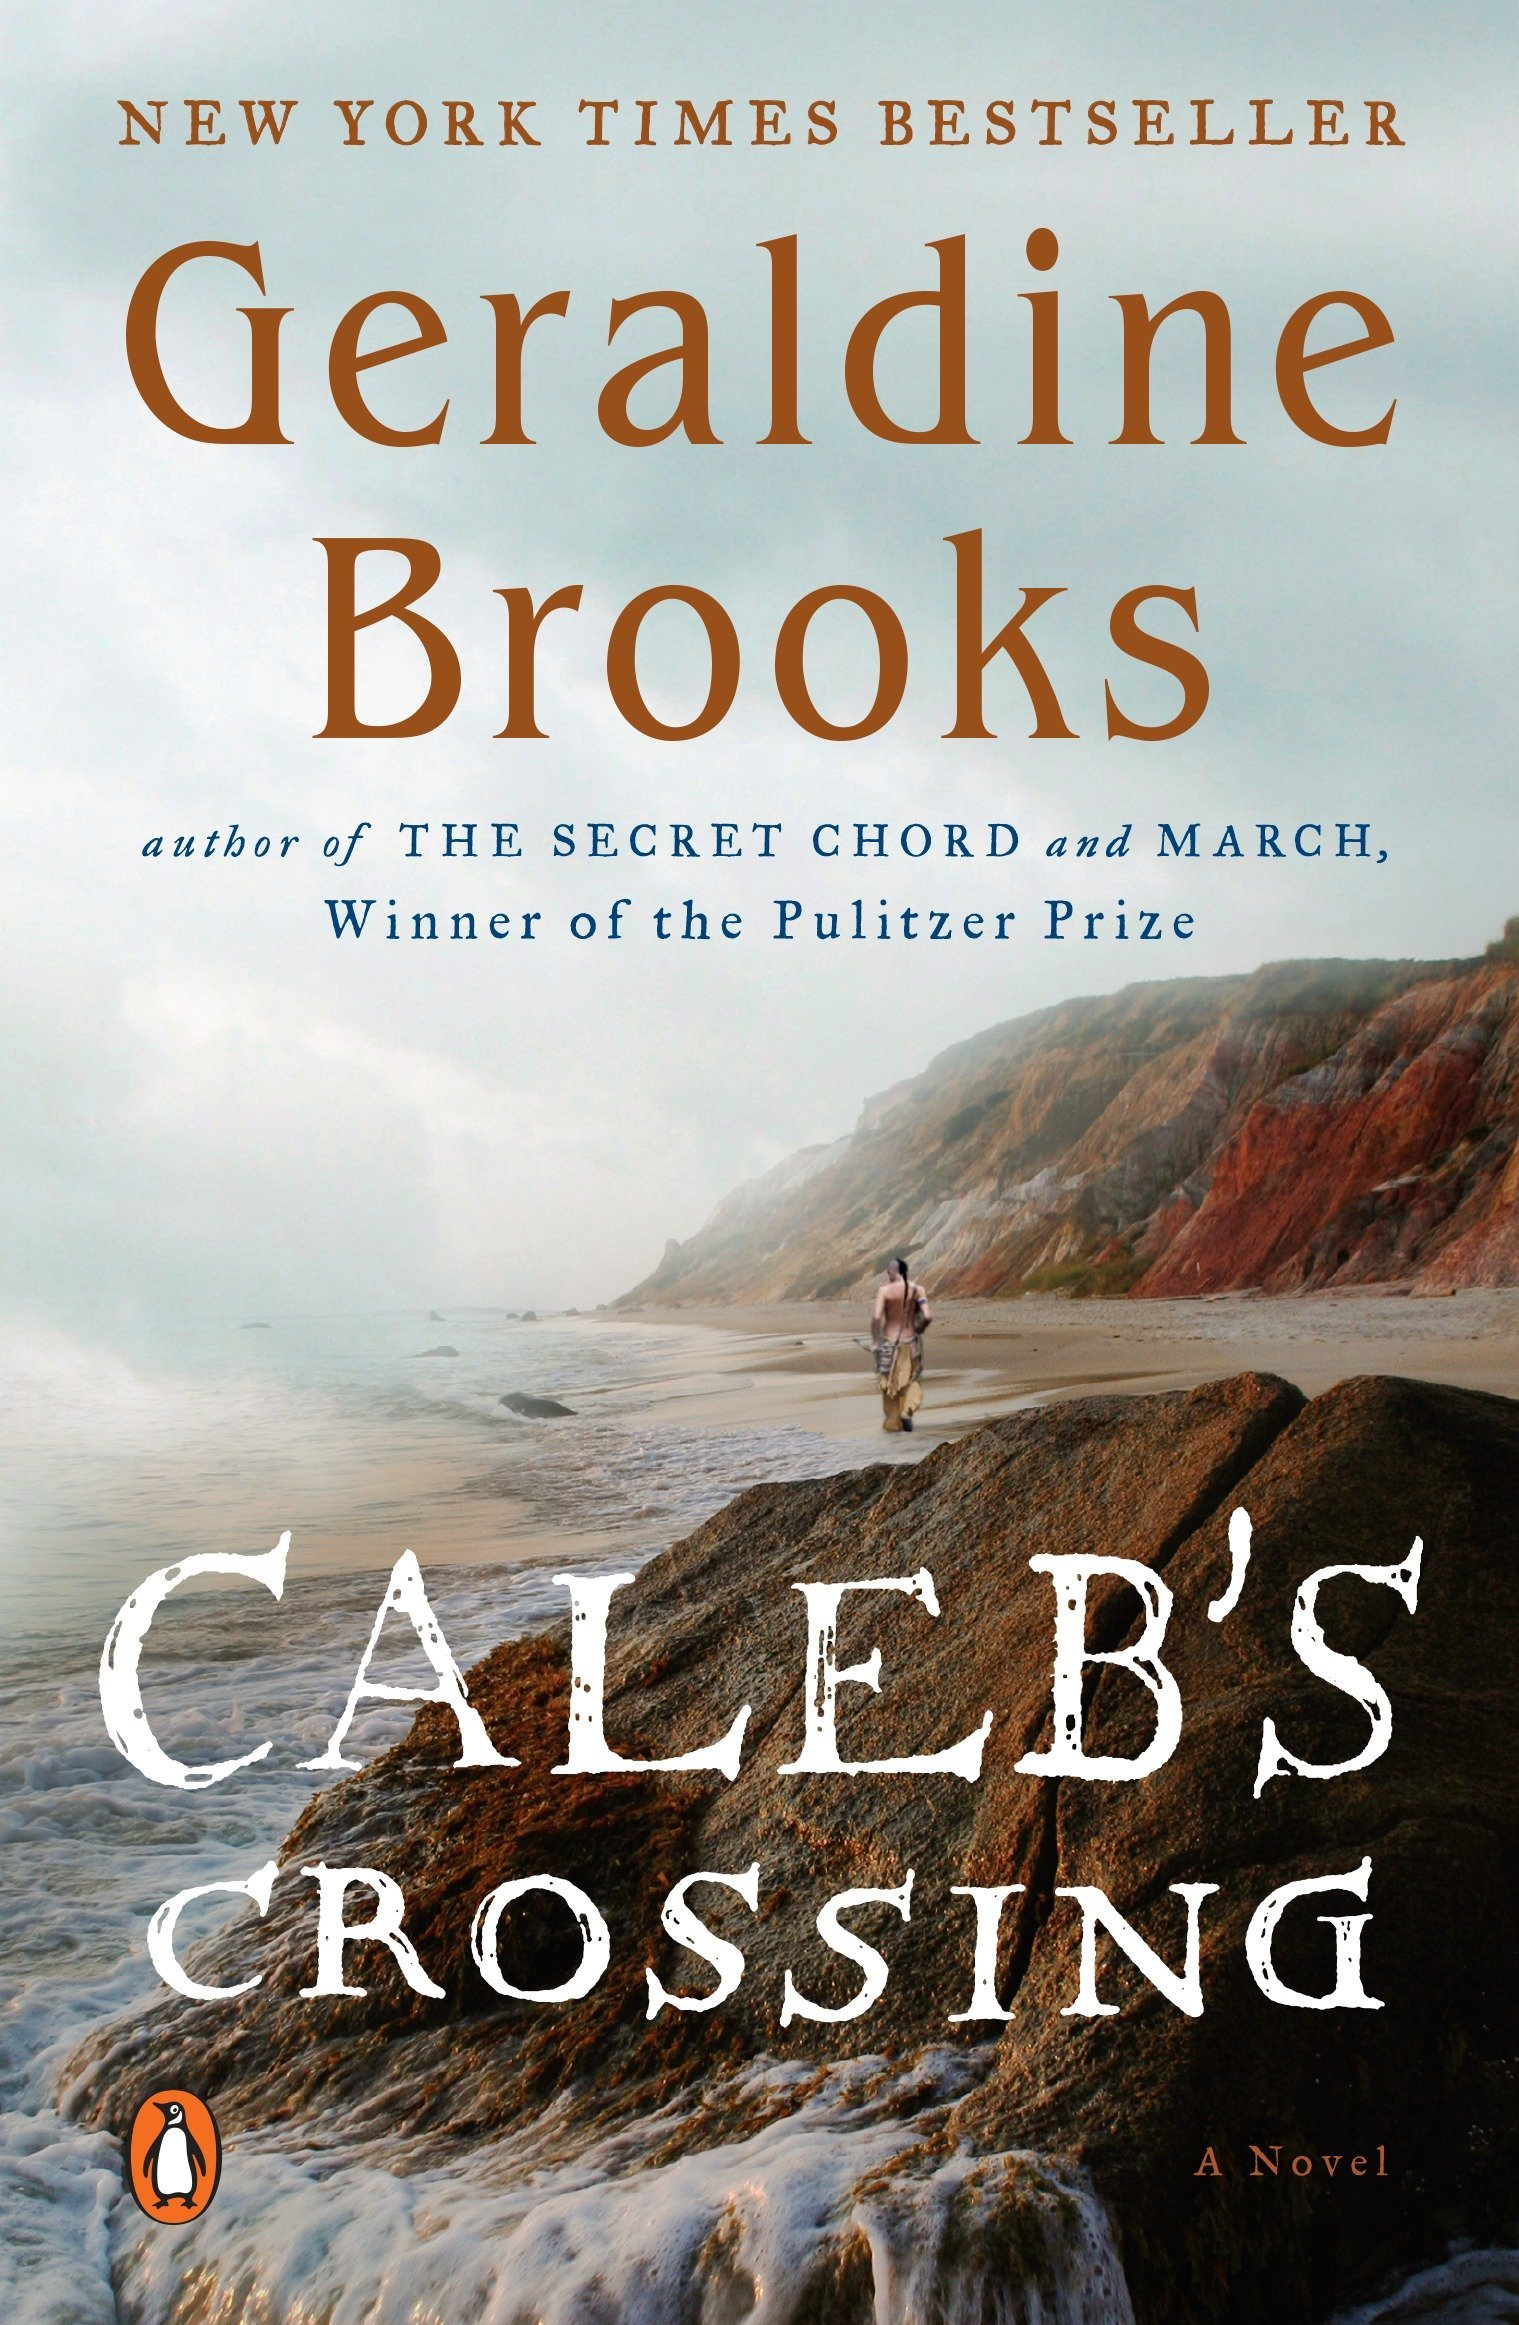 Amazon.com: Caleb's Crossing: A Novel (9780143121077): Brooks, Geraldine:  Books